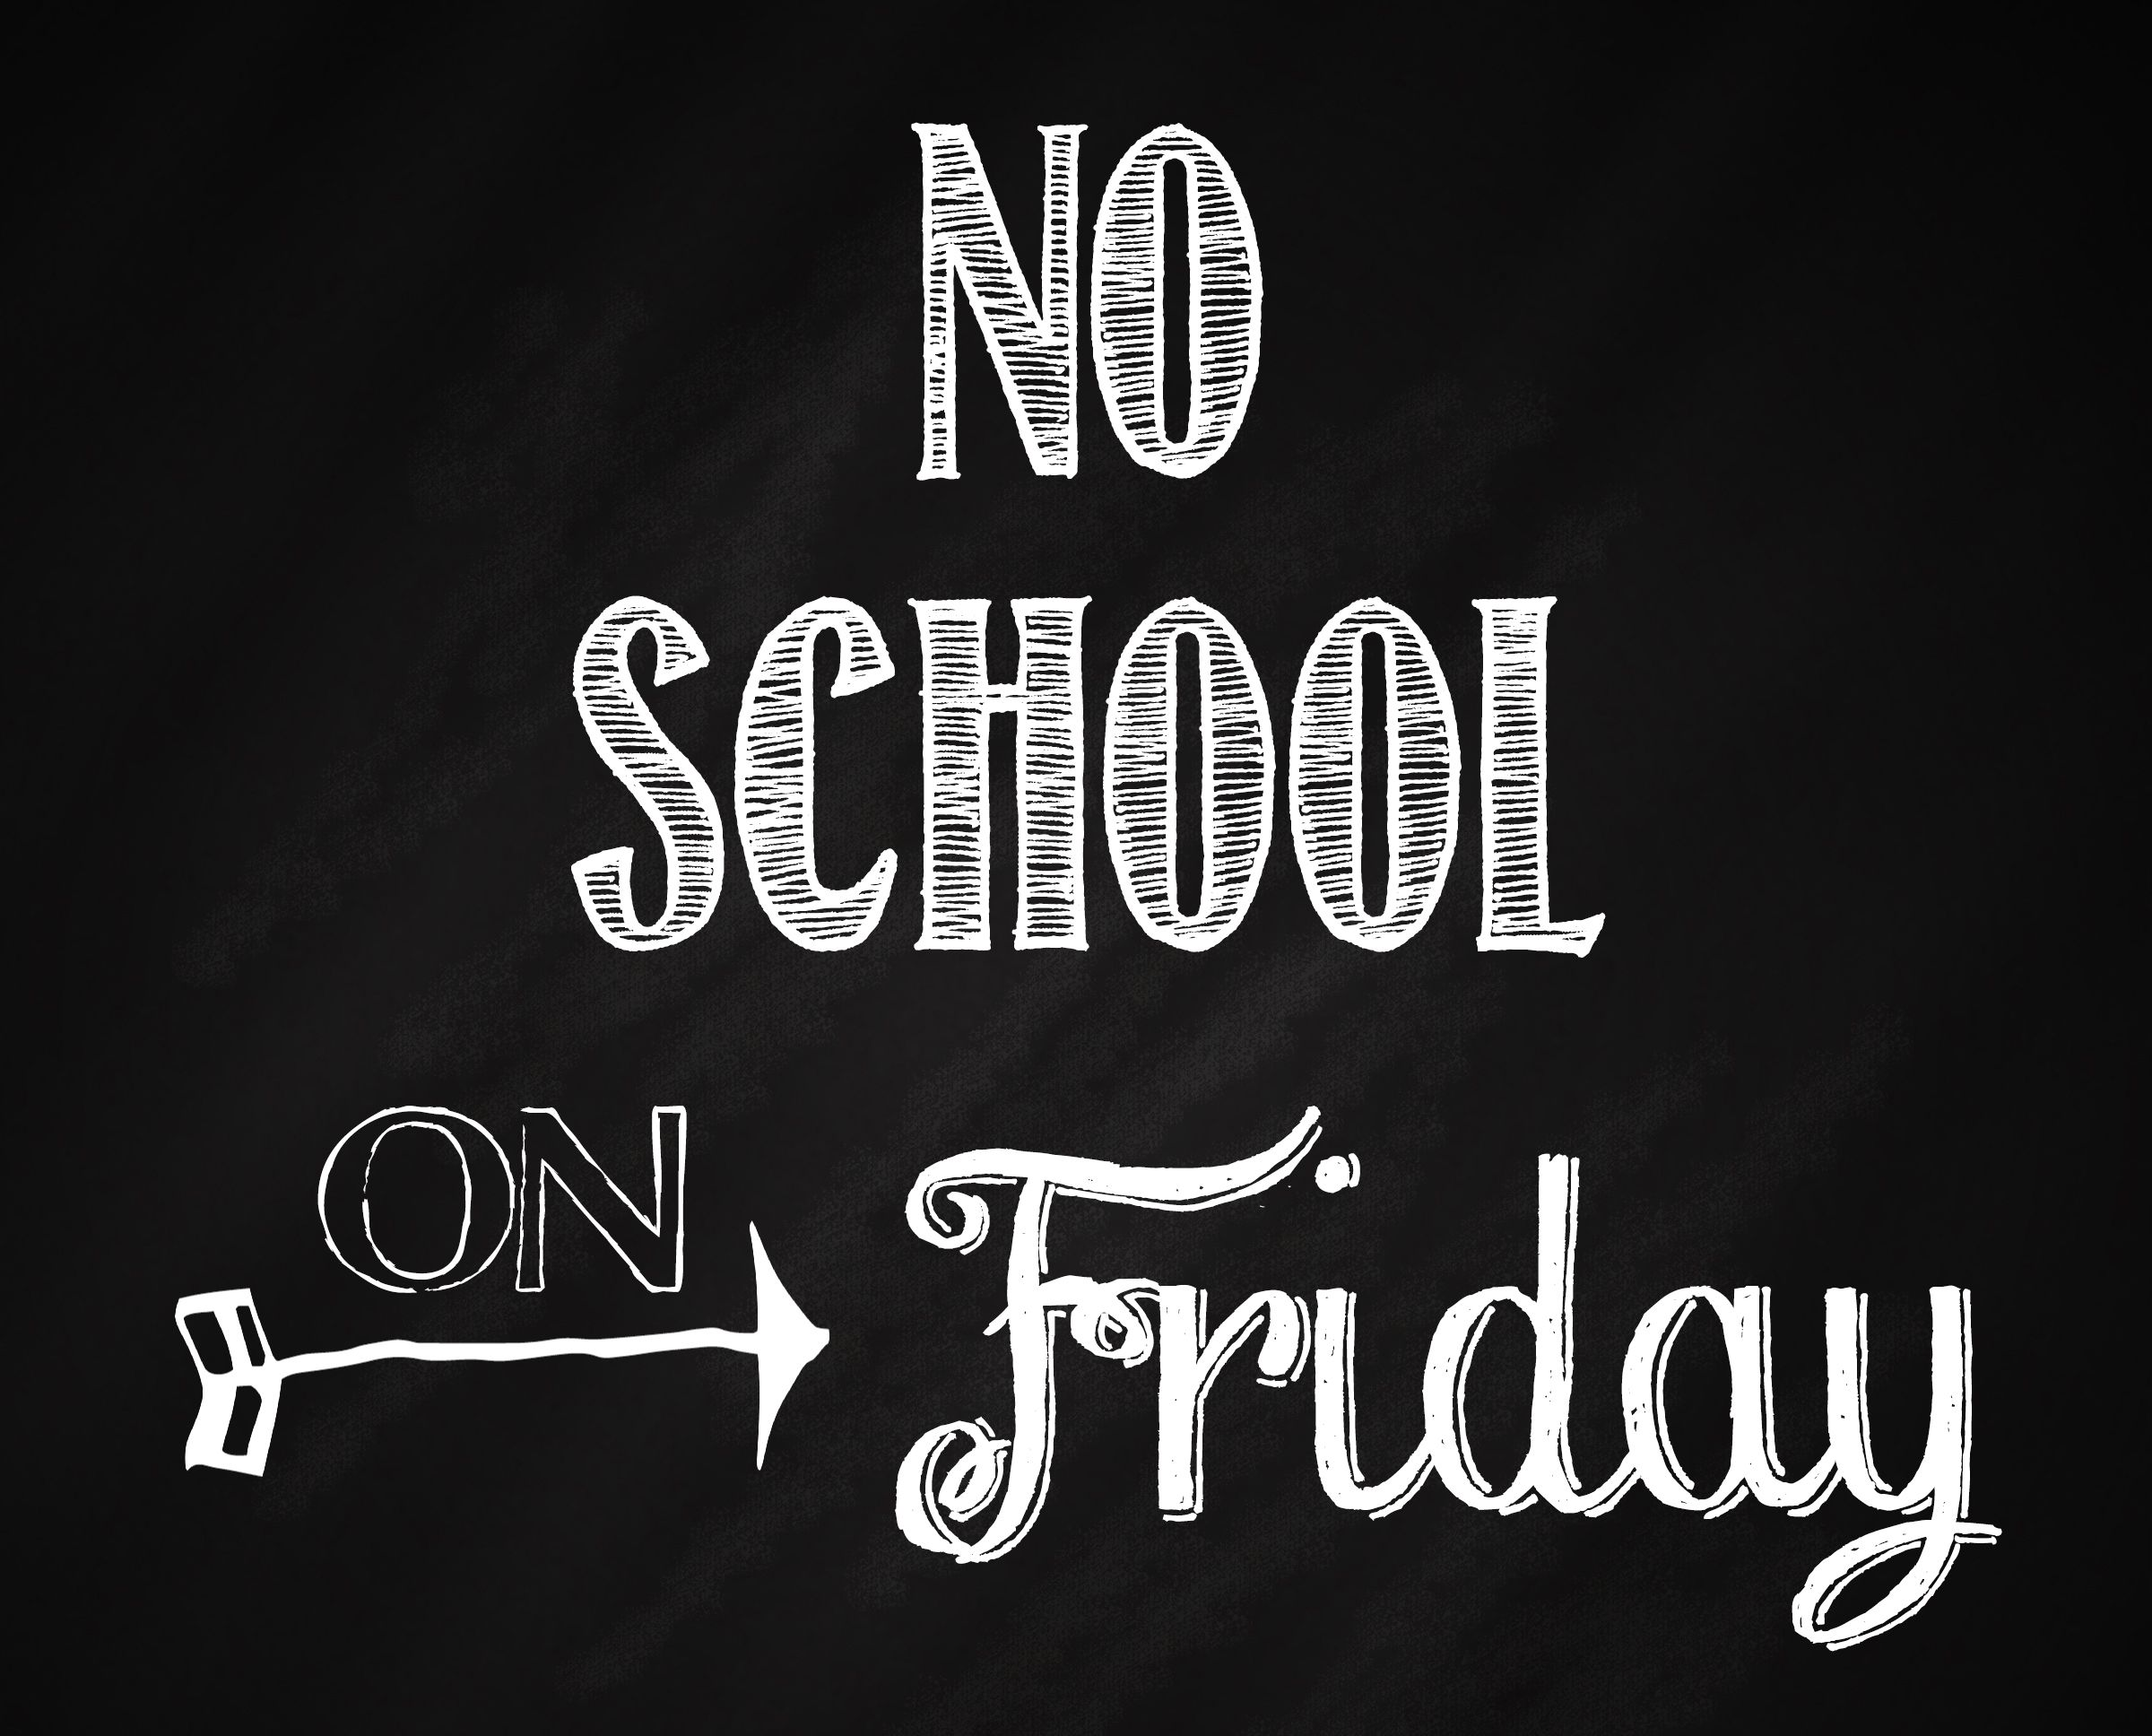 no school this friday school clip art pinterest school and rh pinterest com au no school sign clipart no school sign clipart